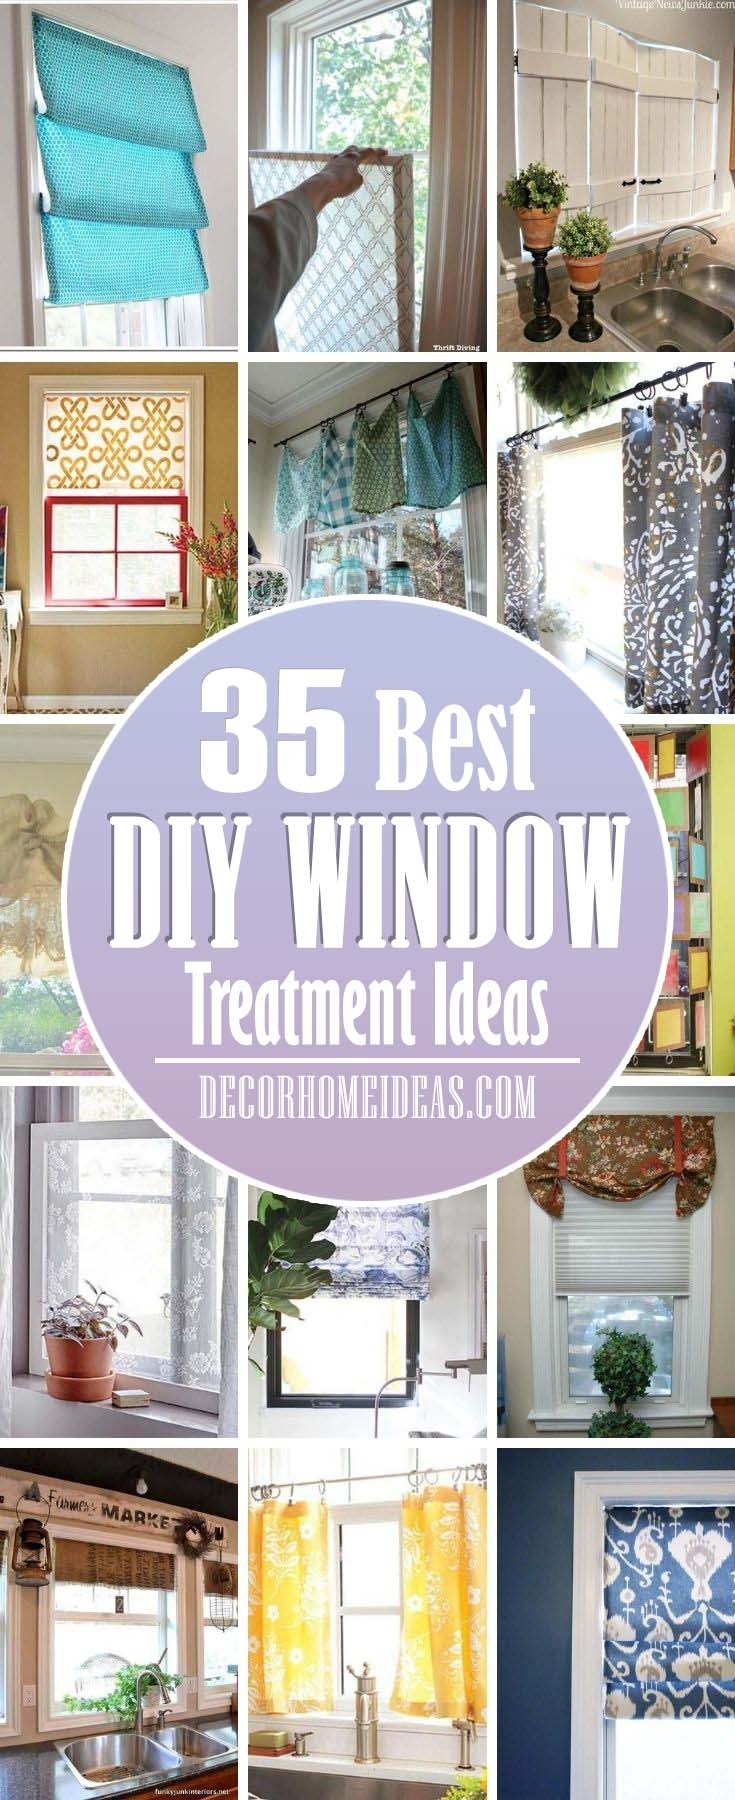 Best Window Treatment Ideas. Whether you're looking for elegant curtains, covered valances, or a simple swath of fabric, we have the best window treatment ideas for every room in the house. #decorhomeideas